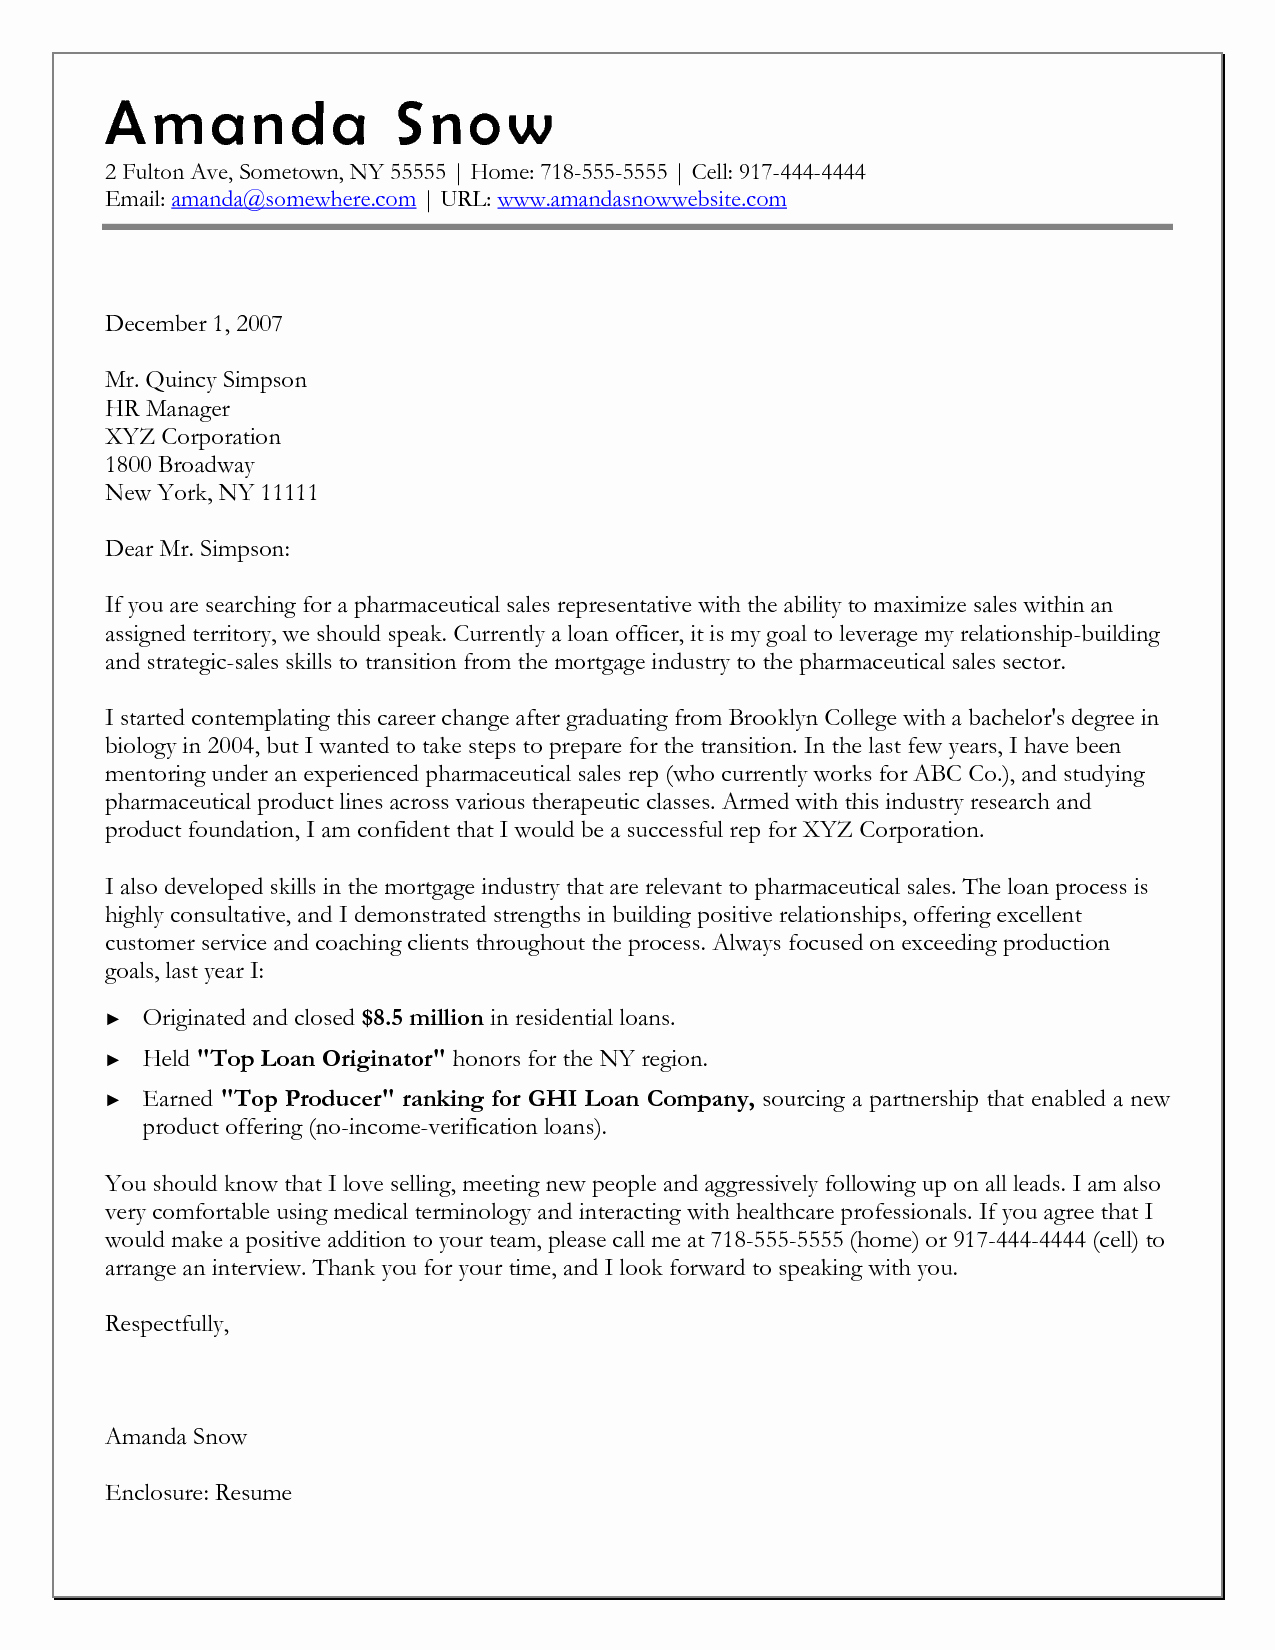 Career Change Cover Letters Elegant 10 Sample Of Career Change Cover Letter